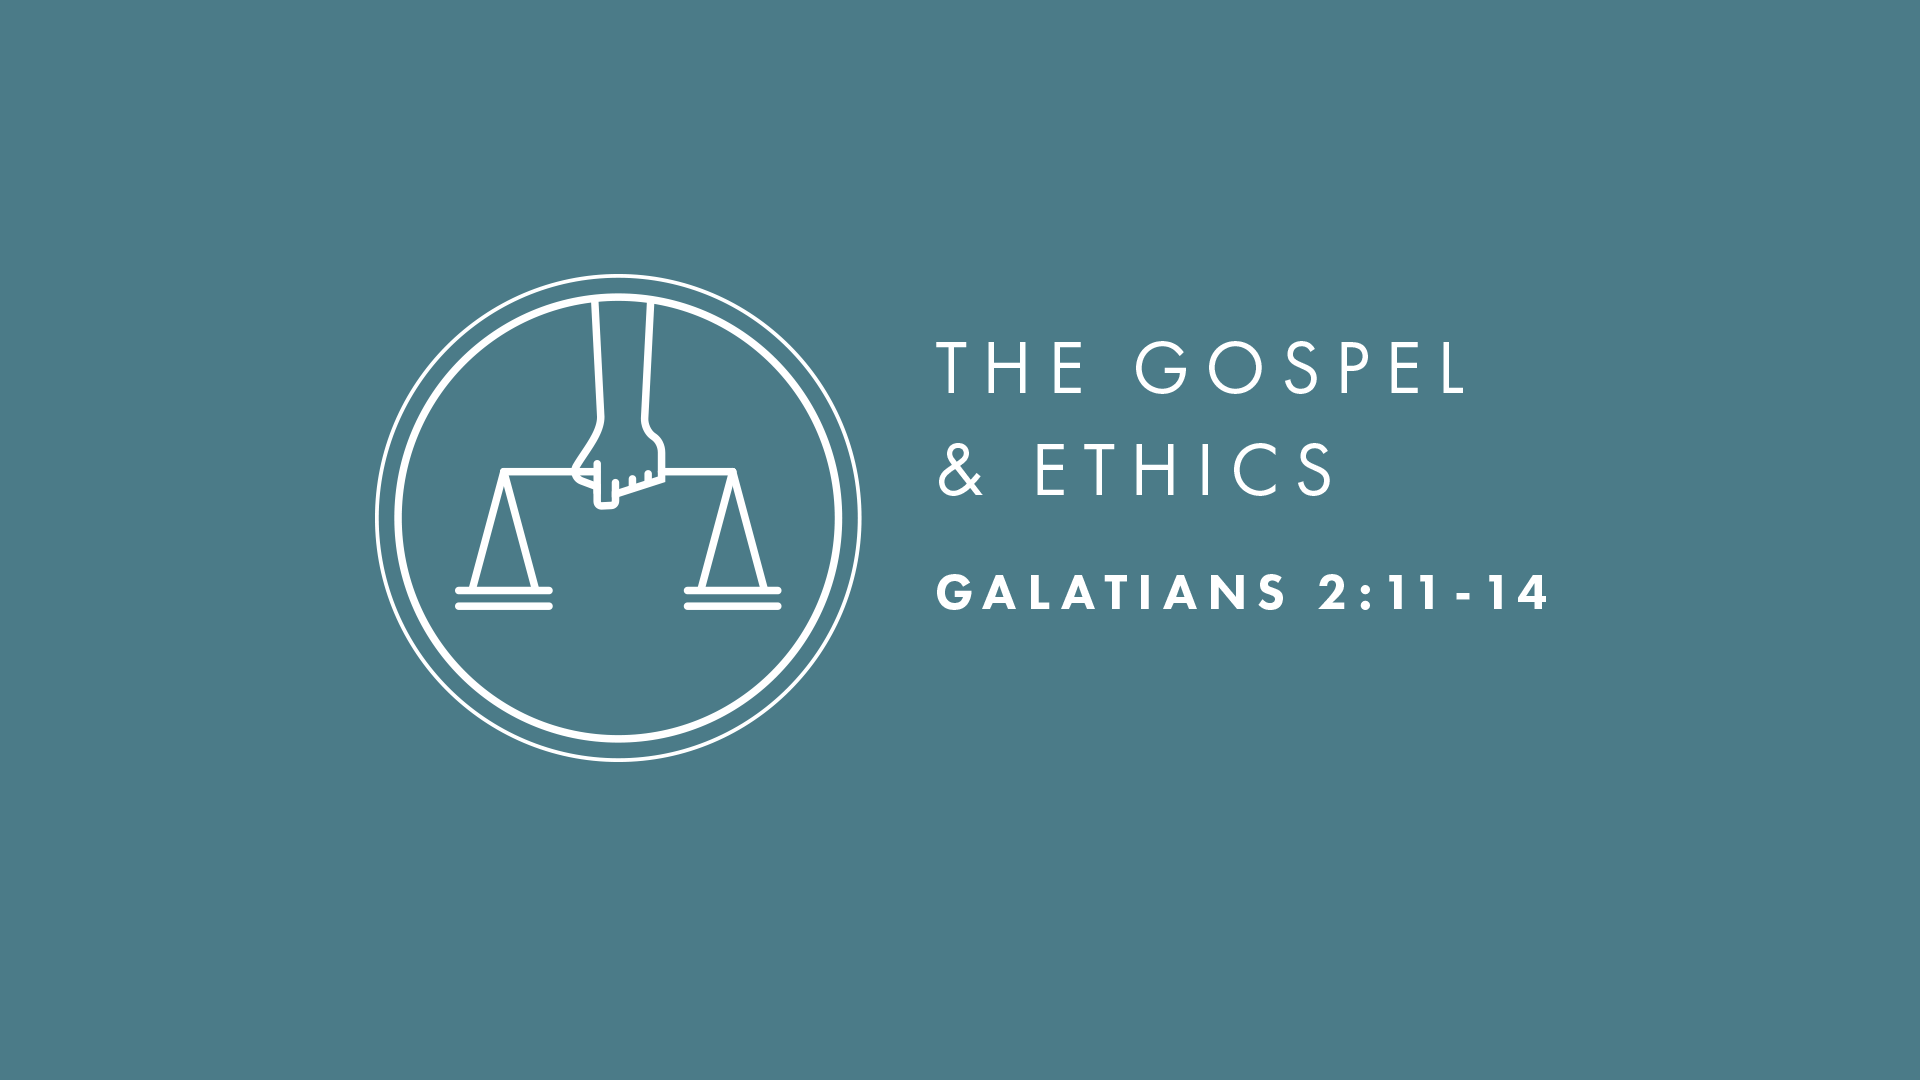 The Gospel and Ethics